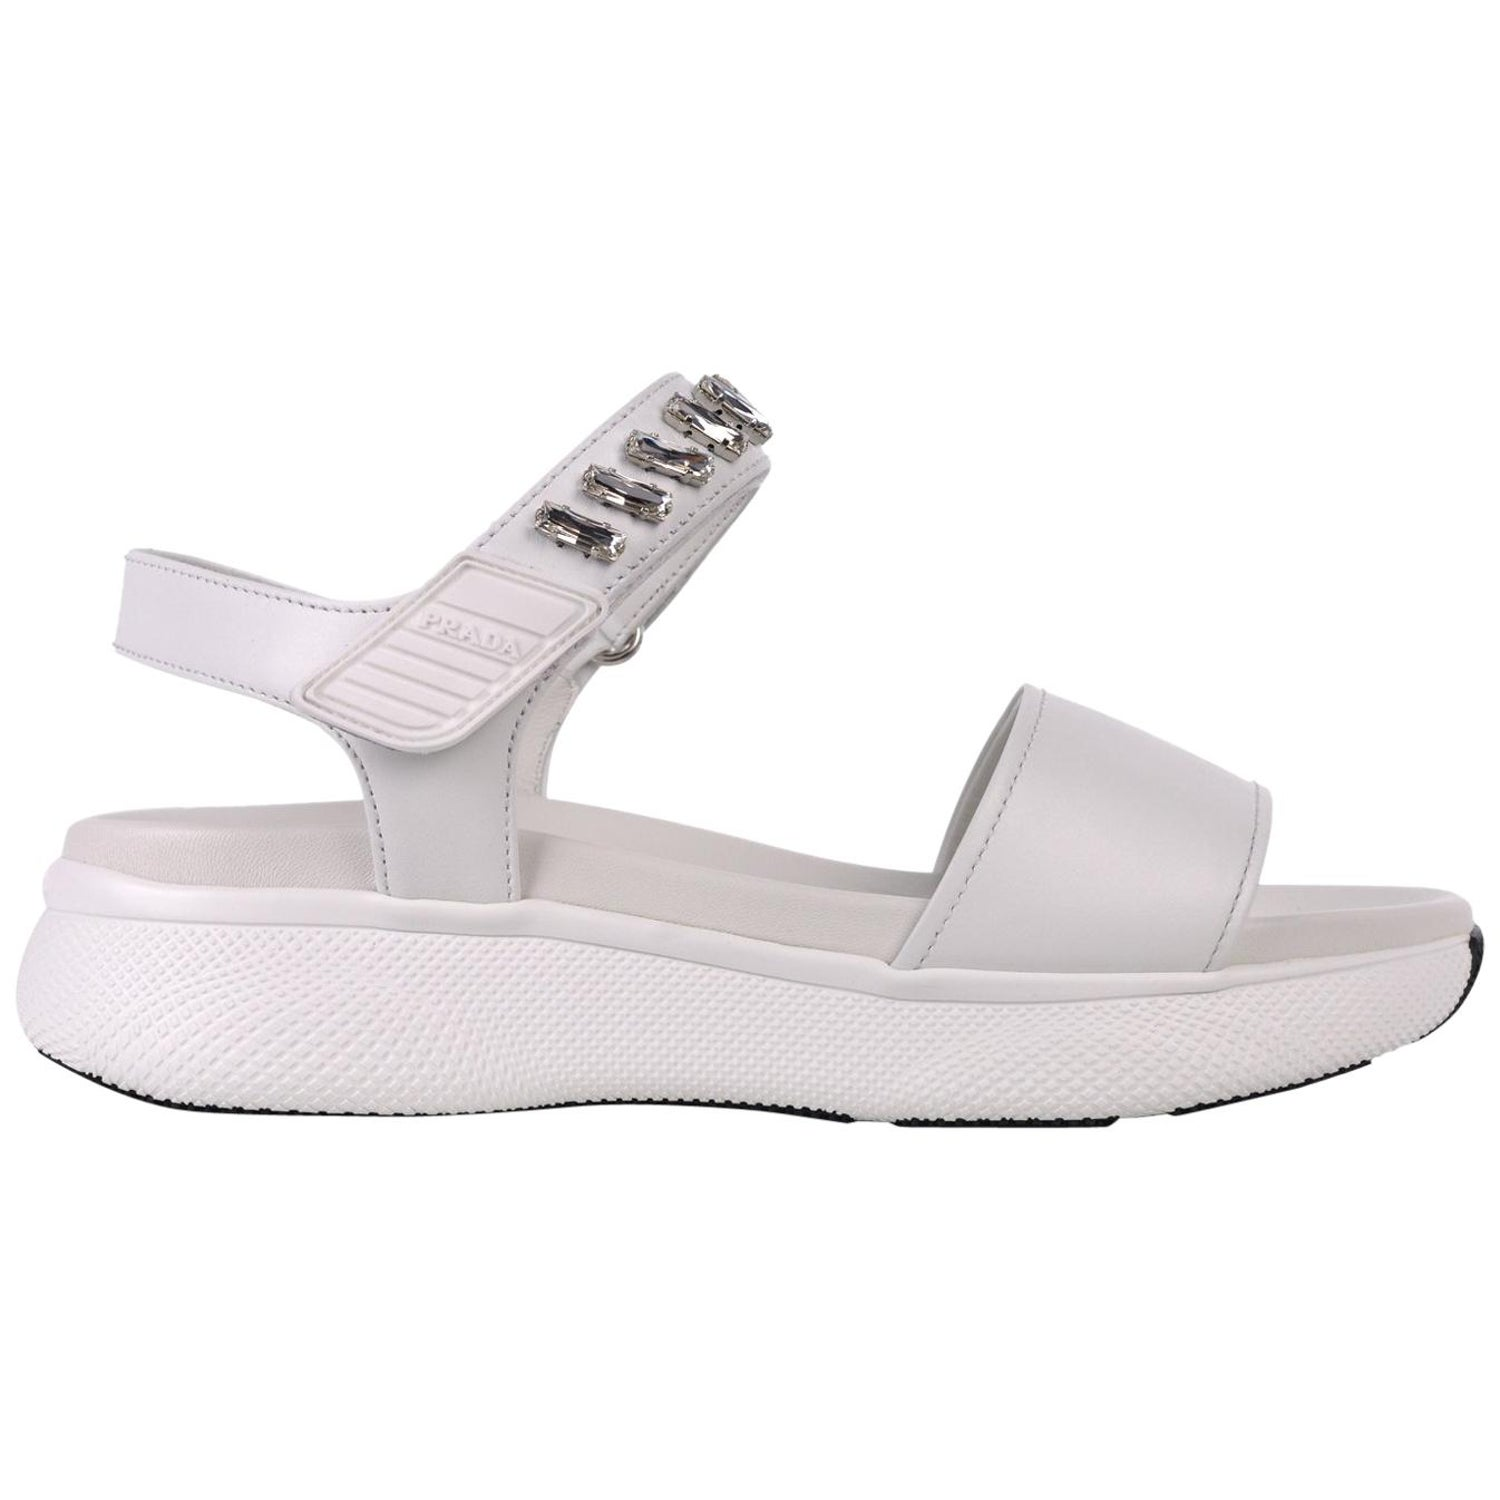 86e62ff12af Prada Women White Embellished Crystal Leather Platform Sandals For Sale at  1stdibs